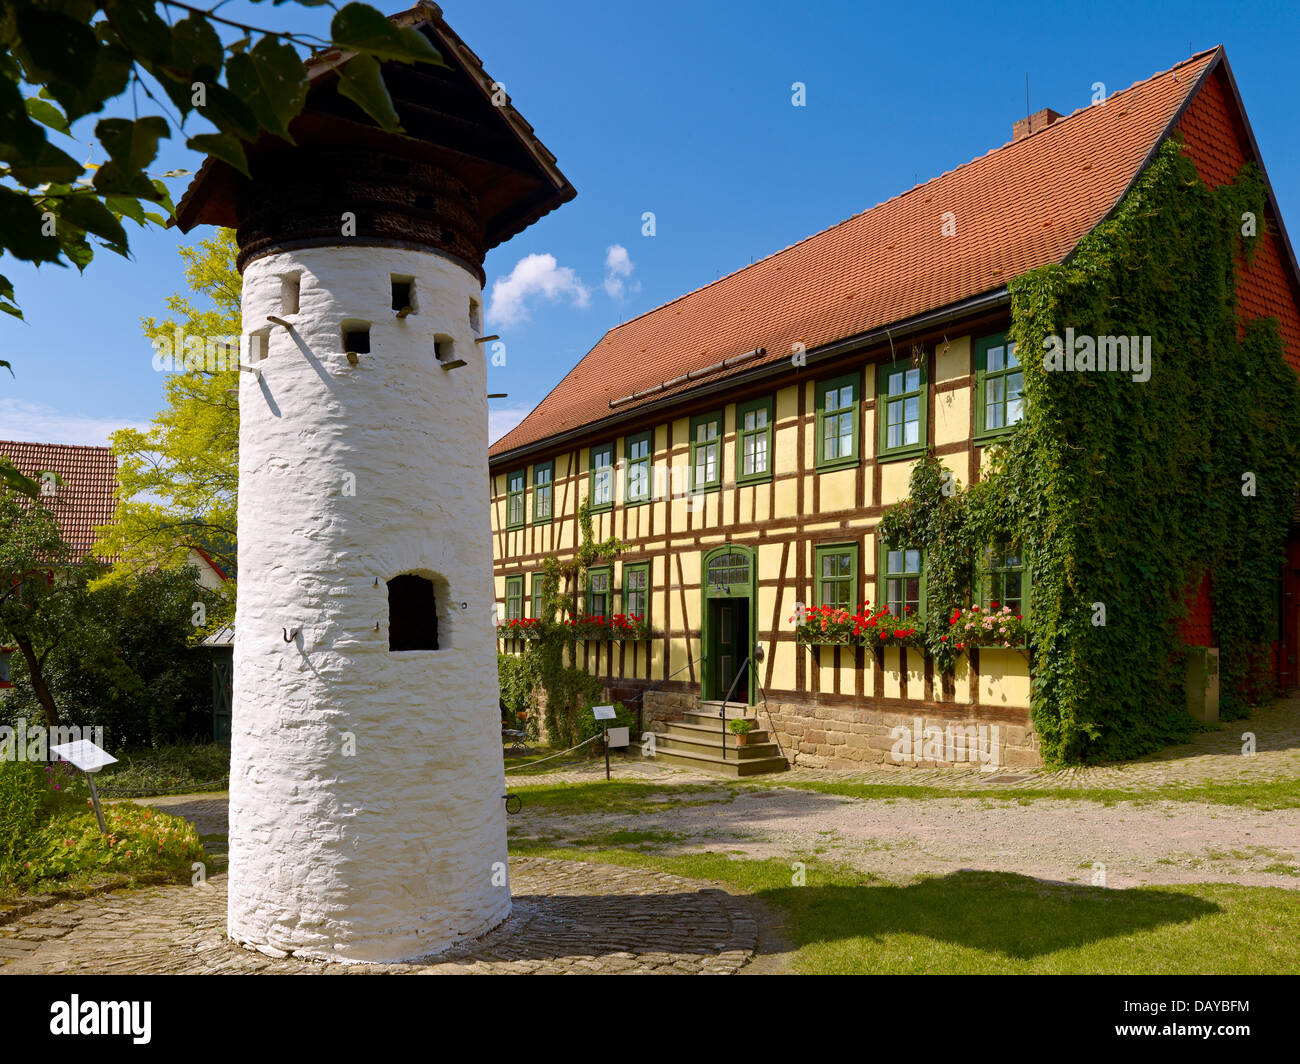 Open air museum Hohenfelden, dovecote, Thuringia, Germany - Stock Image